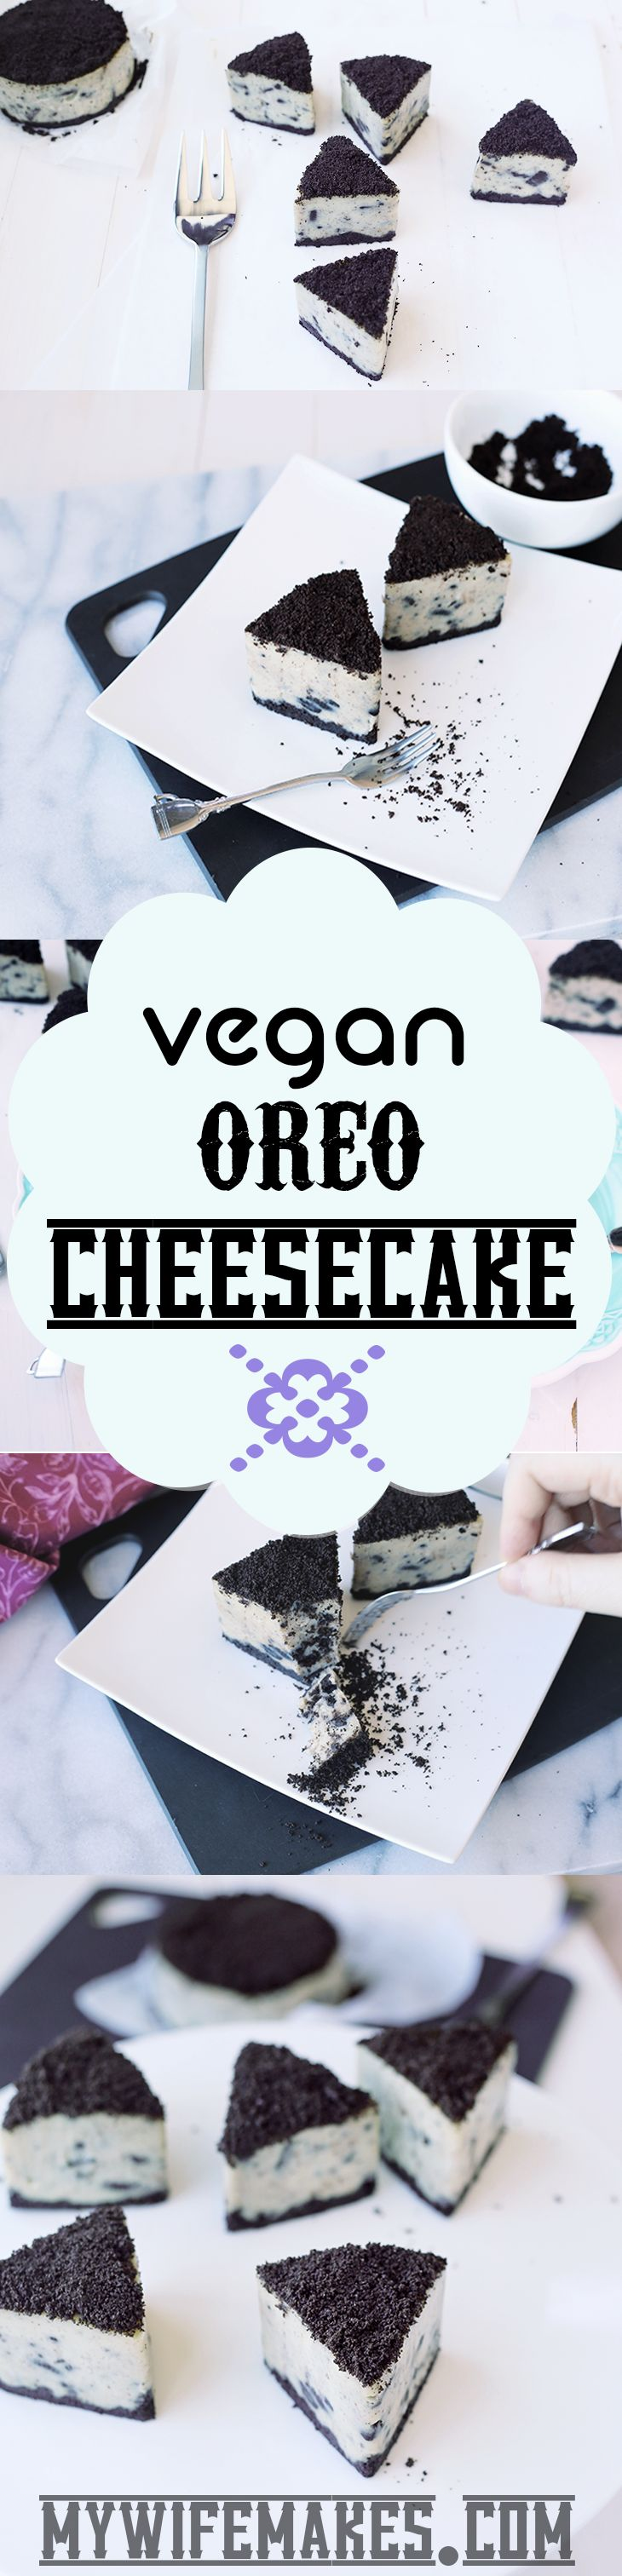 Delicious Vegan Oreo Cheesecake! Cashew based, easy to make and 100% Delicious!!! Yummmm!!! #vegan #veganfood #oreo #cheesecake